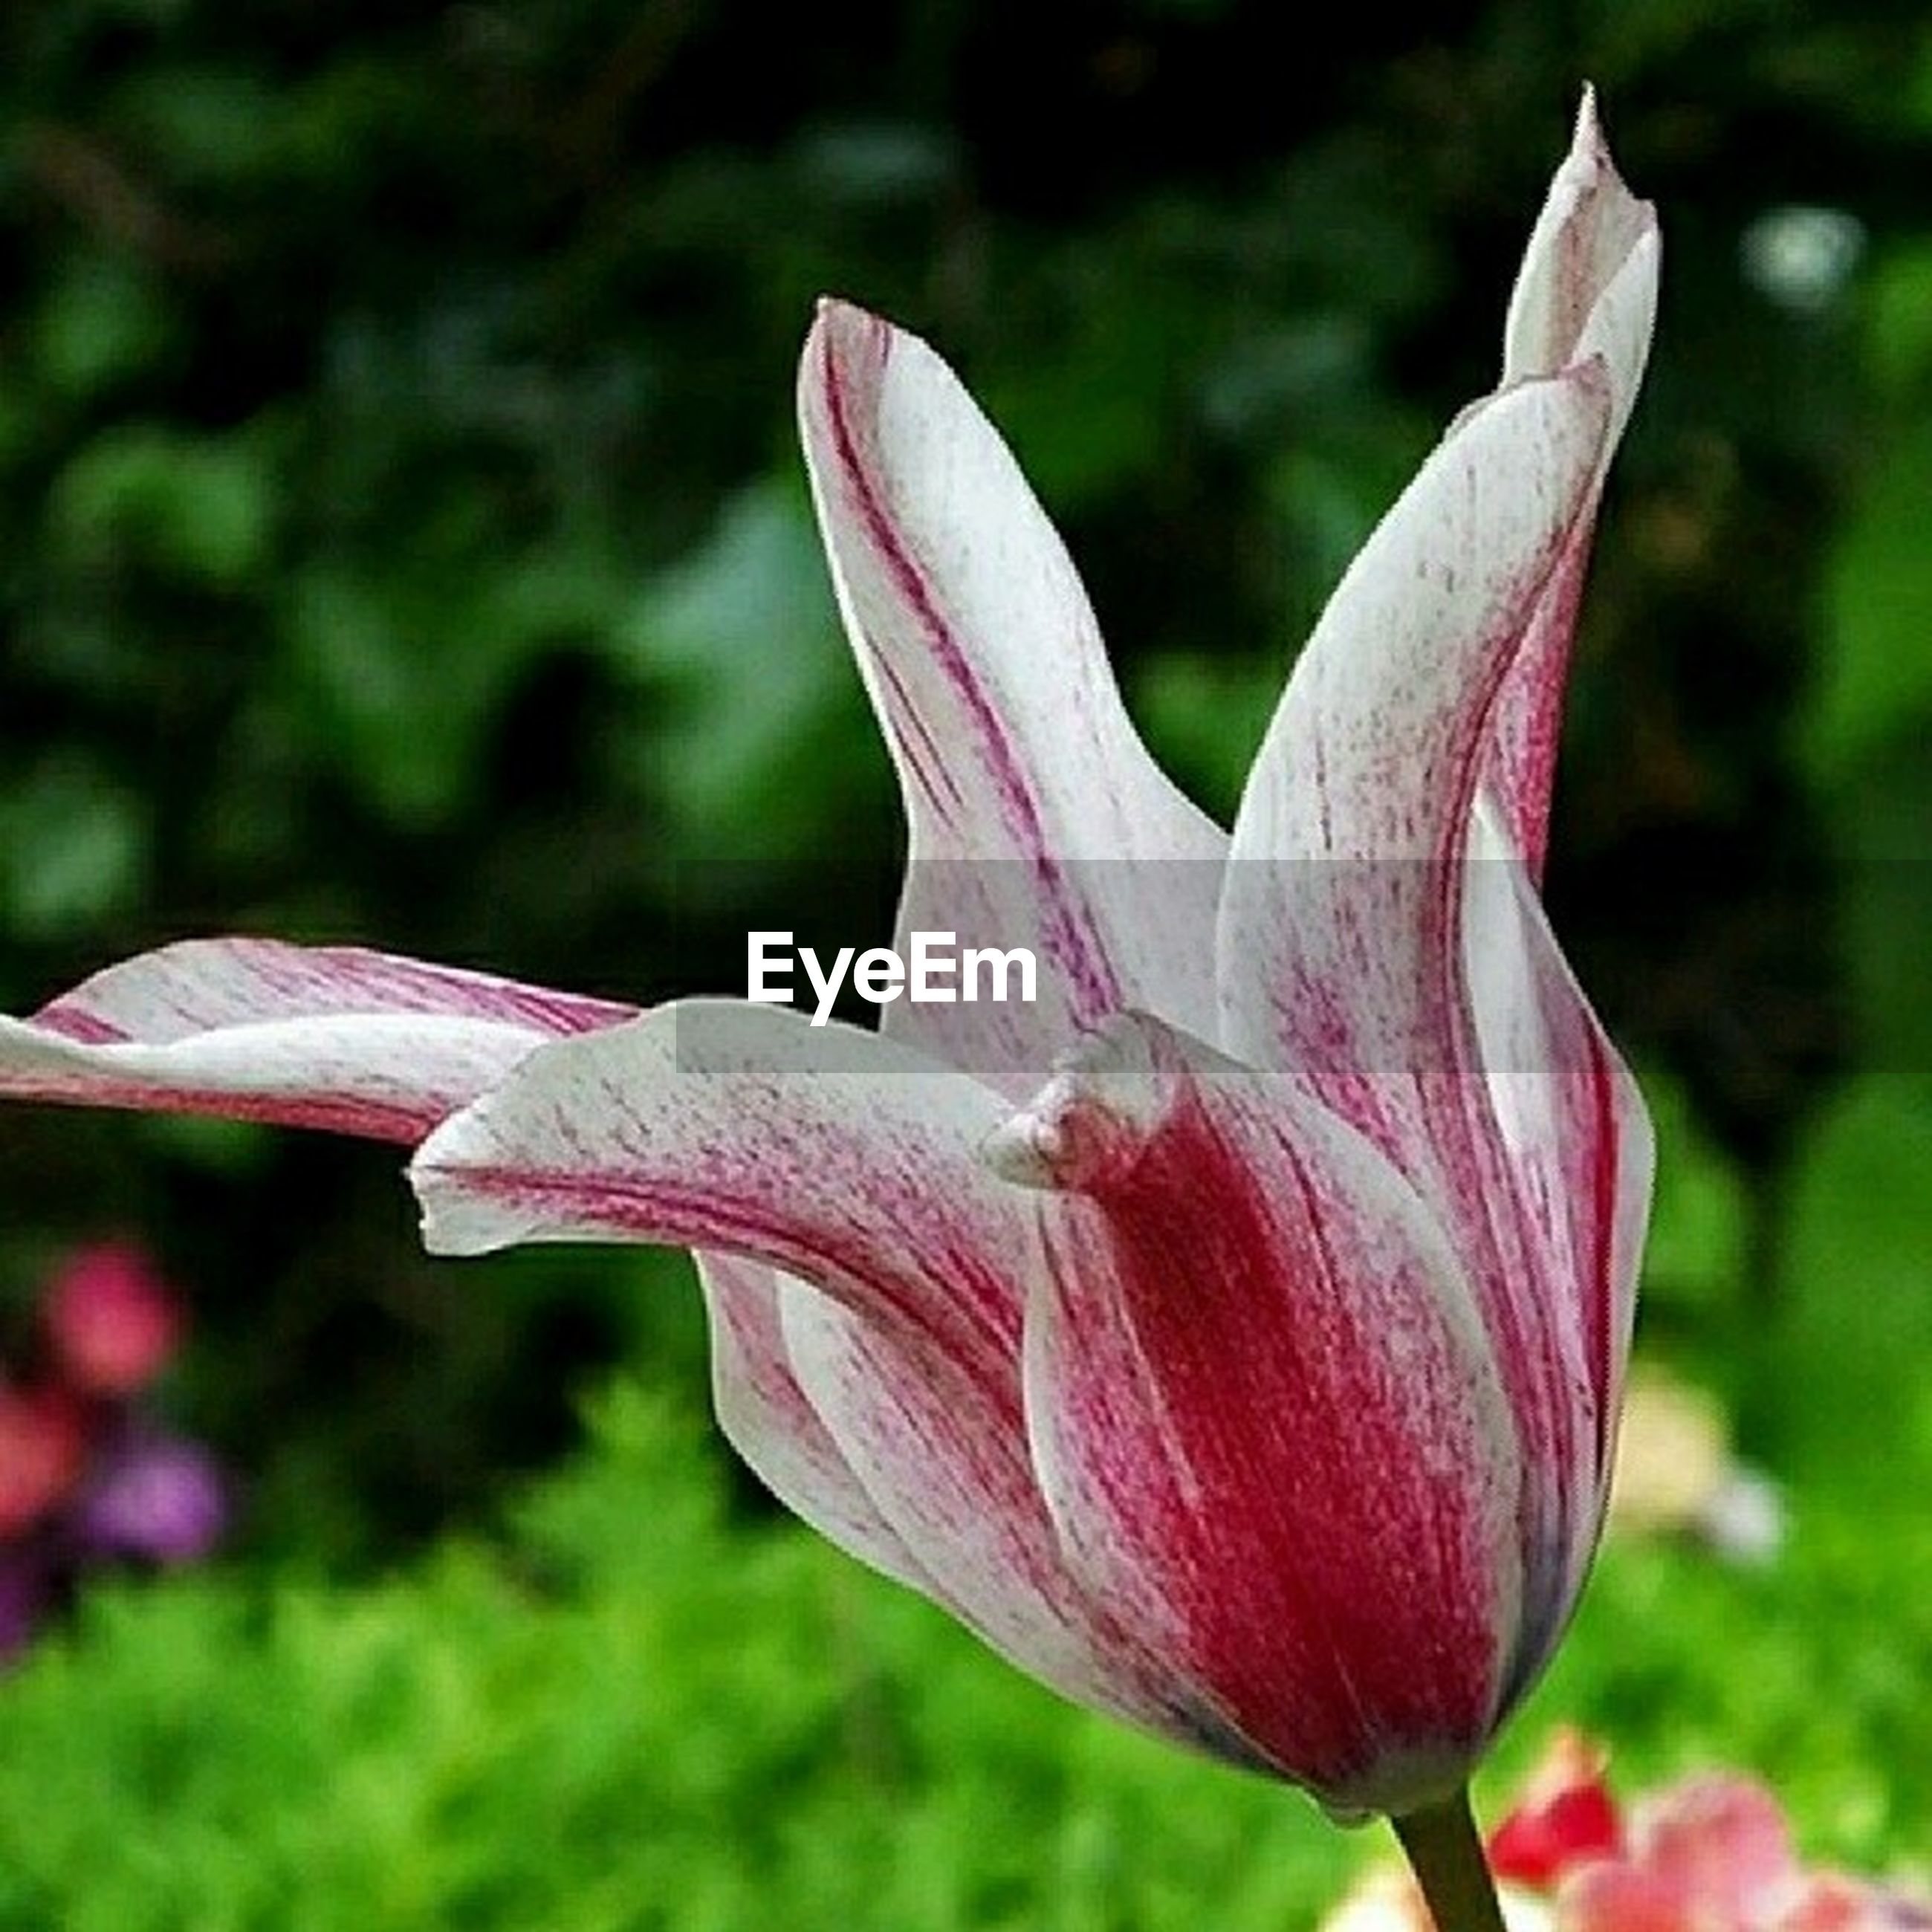 flower, petal, freshness, fragility, pink color, growth, flower head, beauty in nature, close-up, focus on foreground, nature, blooming, plant, stem, in bloom, pink, blossom, tulip, outdoors, park - man made space